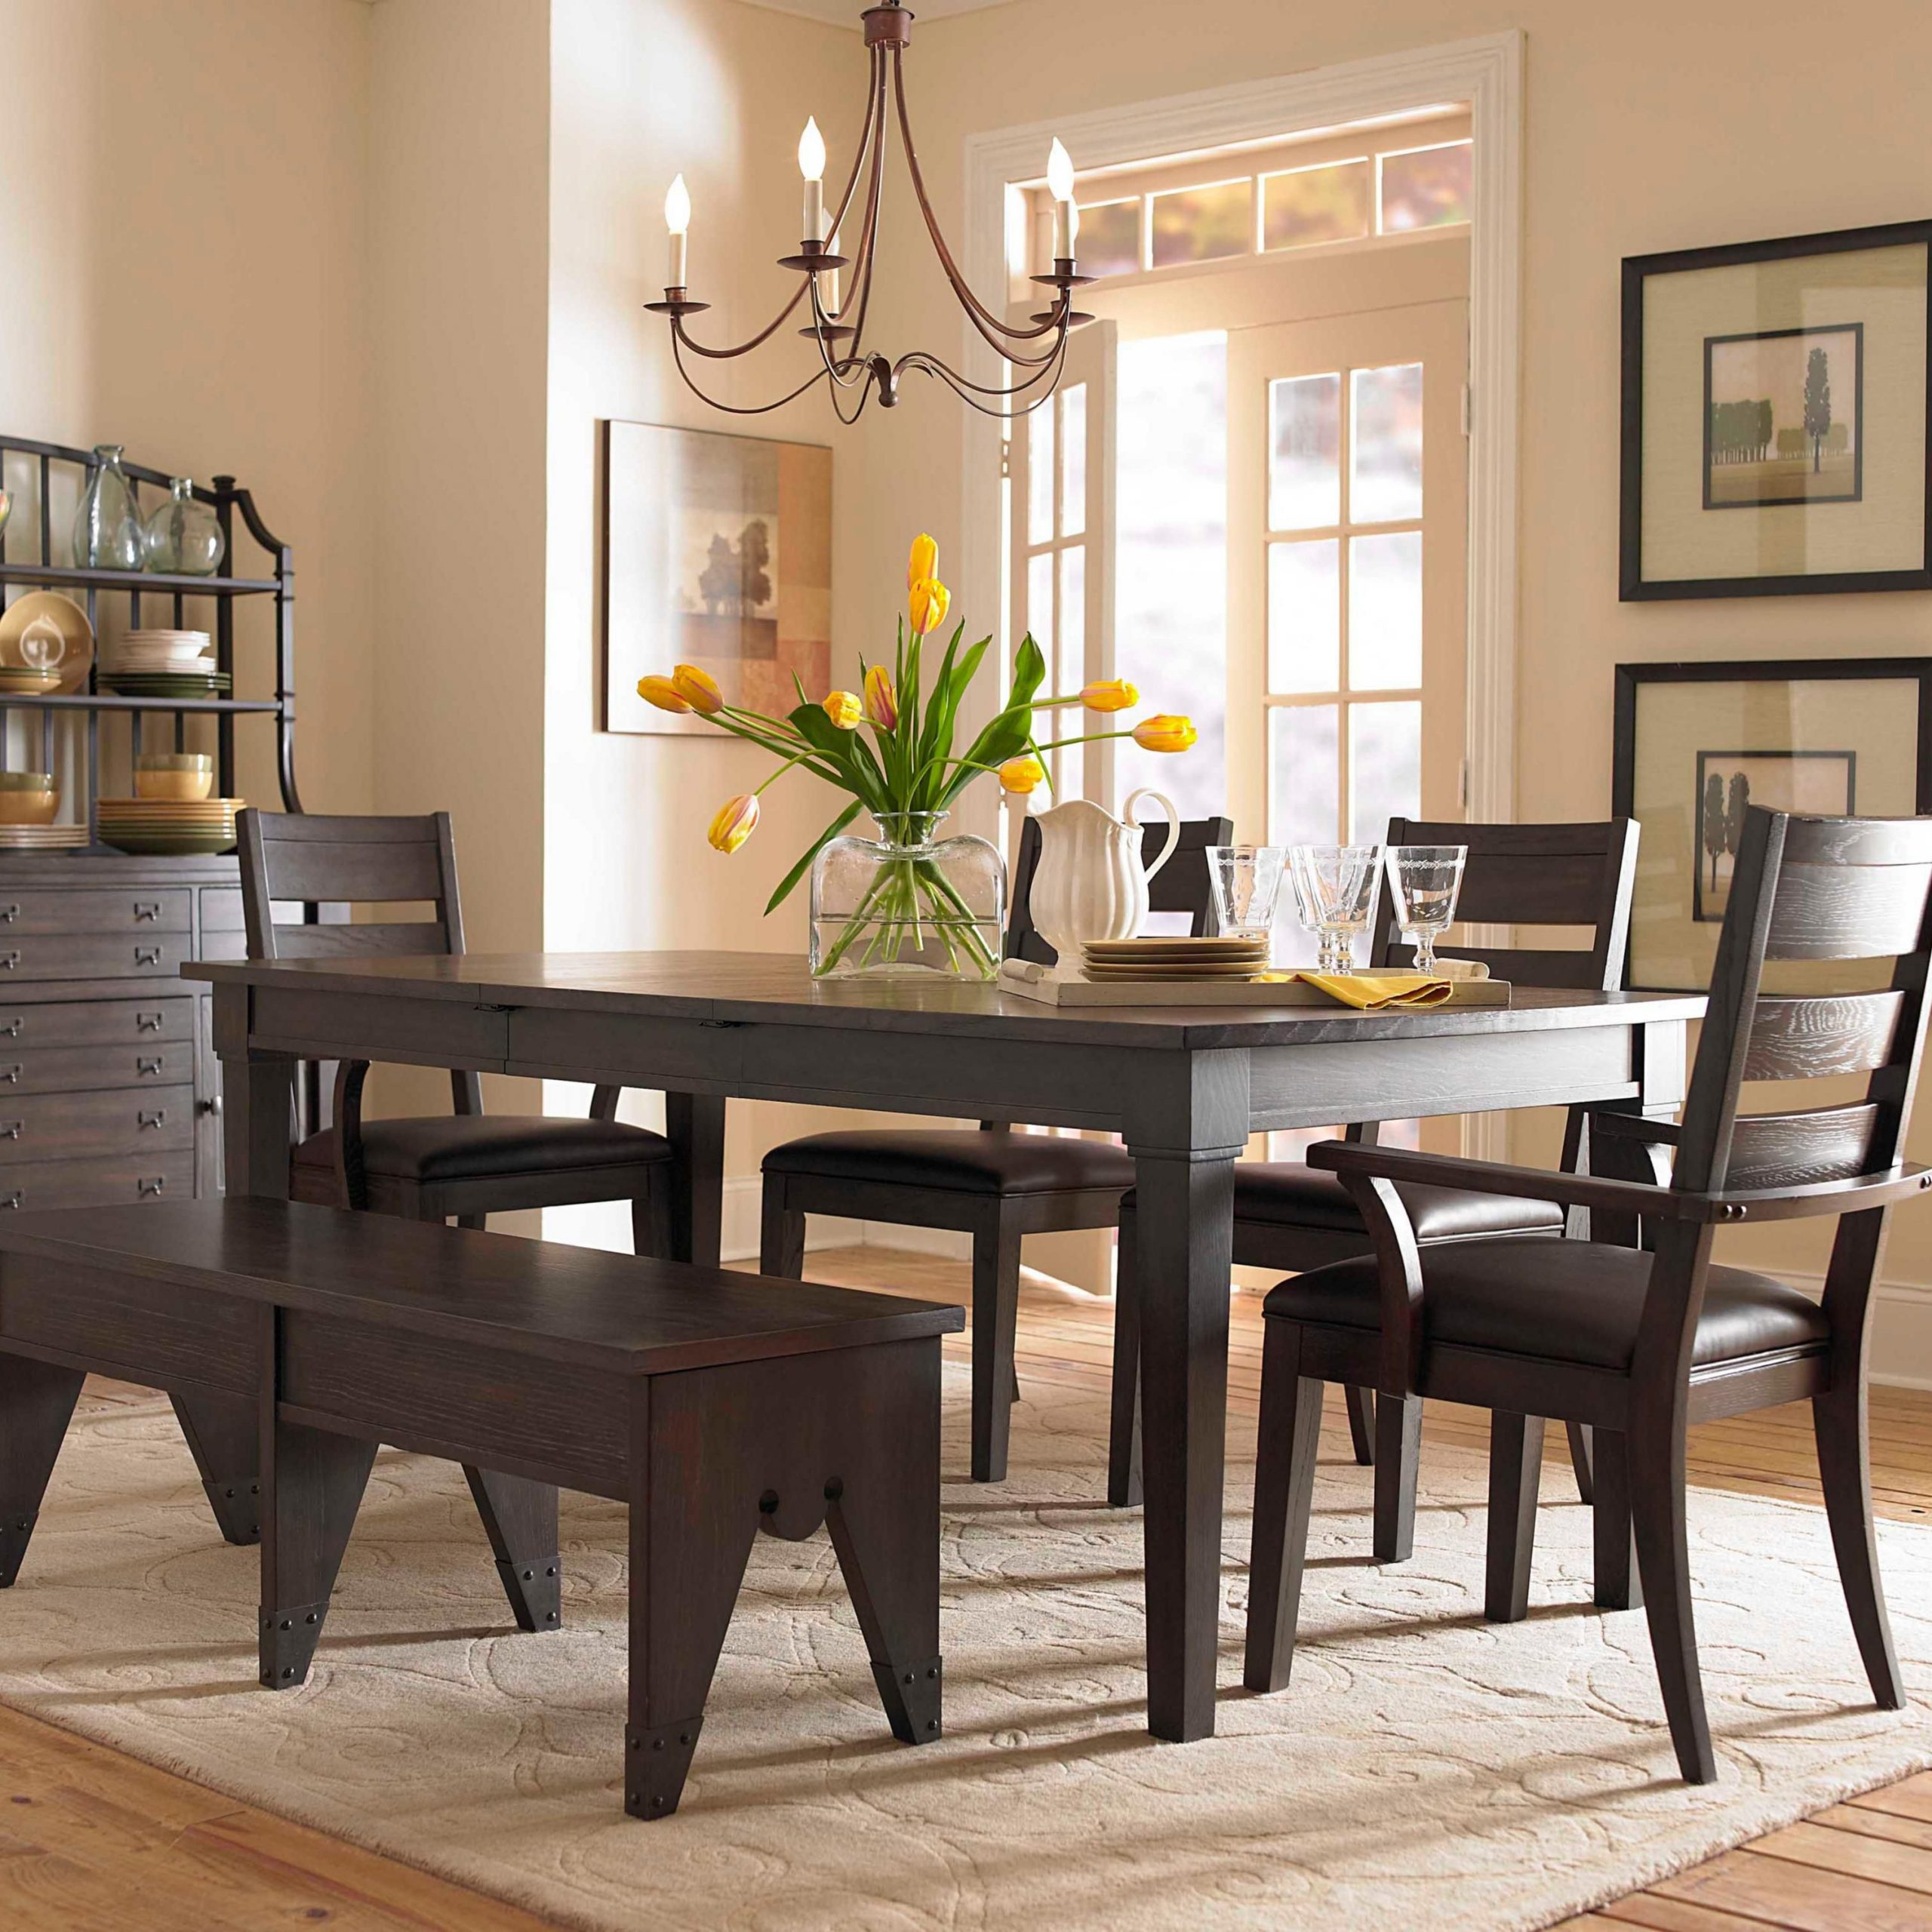 Outstanding Transitional Dining Room Suitable For Any Home: 25 Inspirations Of Transitional 6-Seating Casual Dining Tables